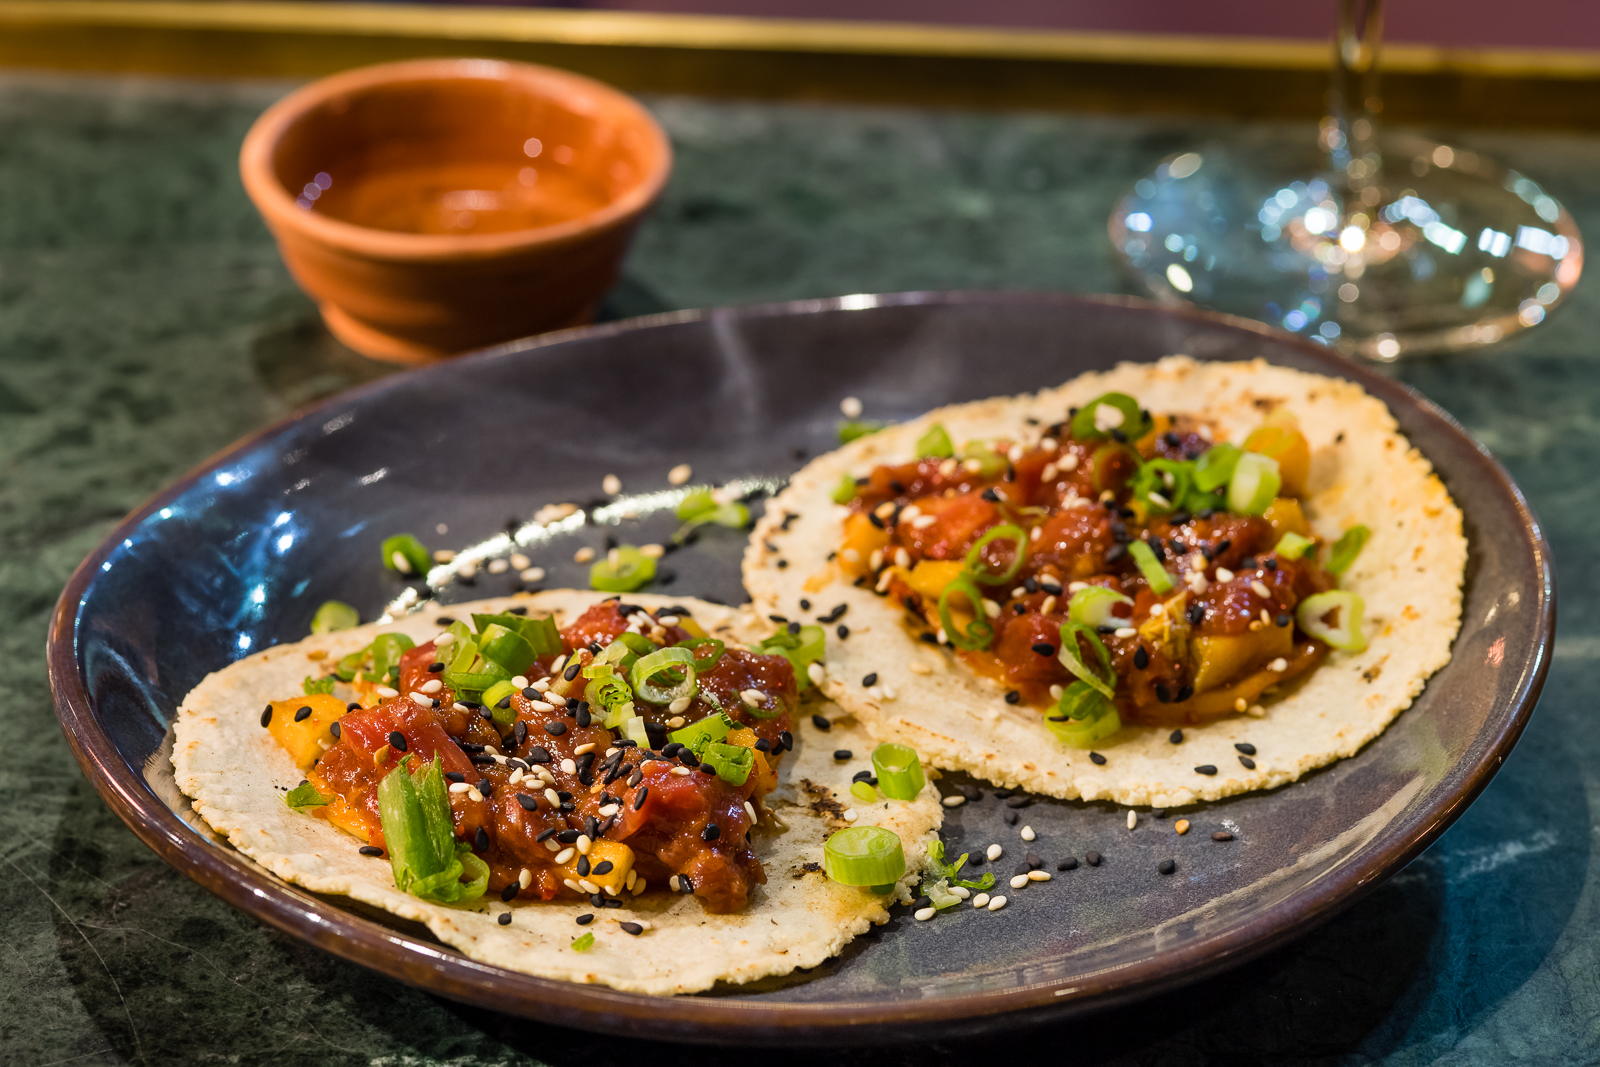 Soy cured beef tacos at Temper restaurant